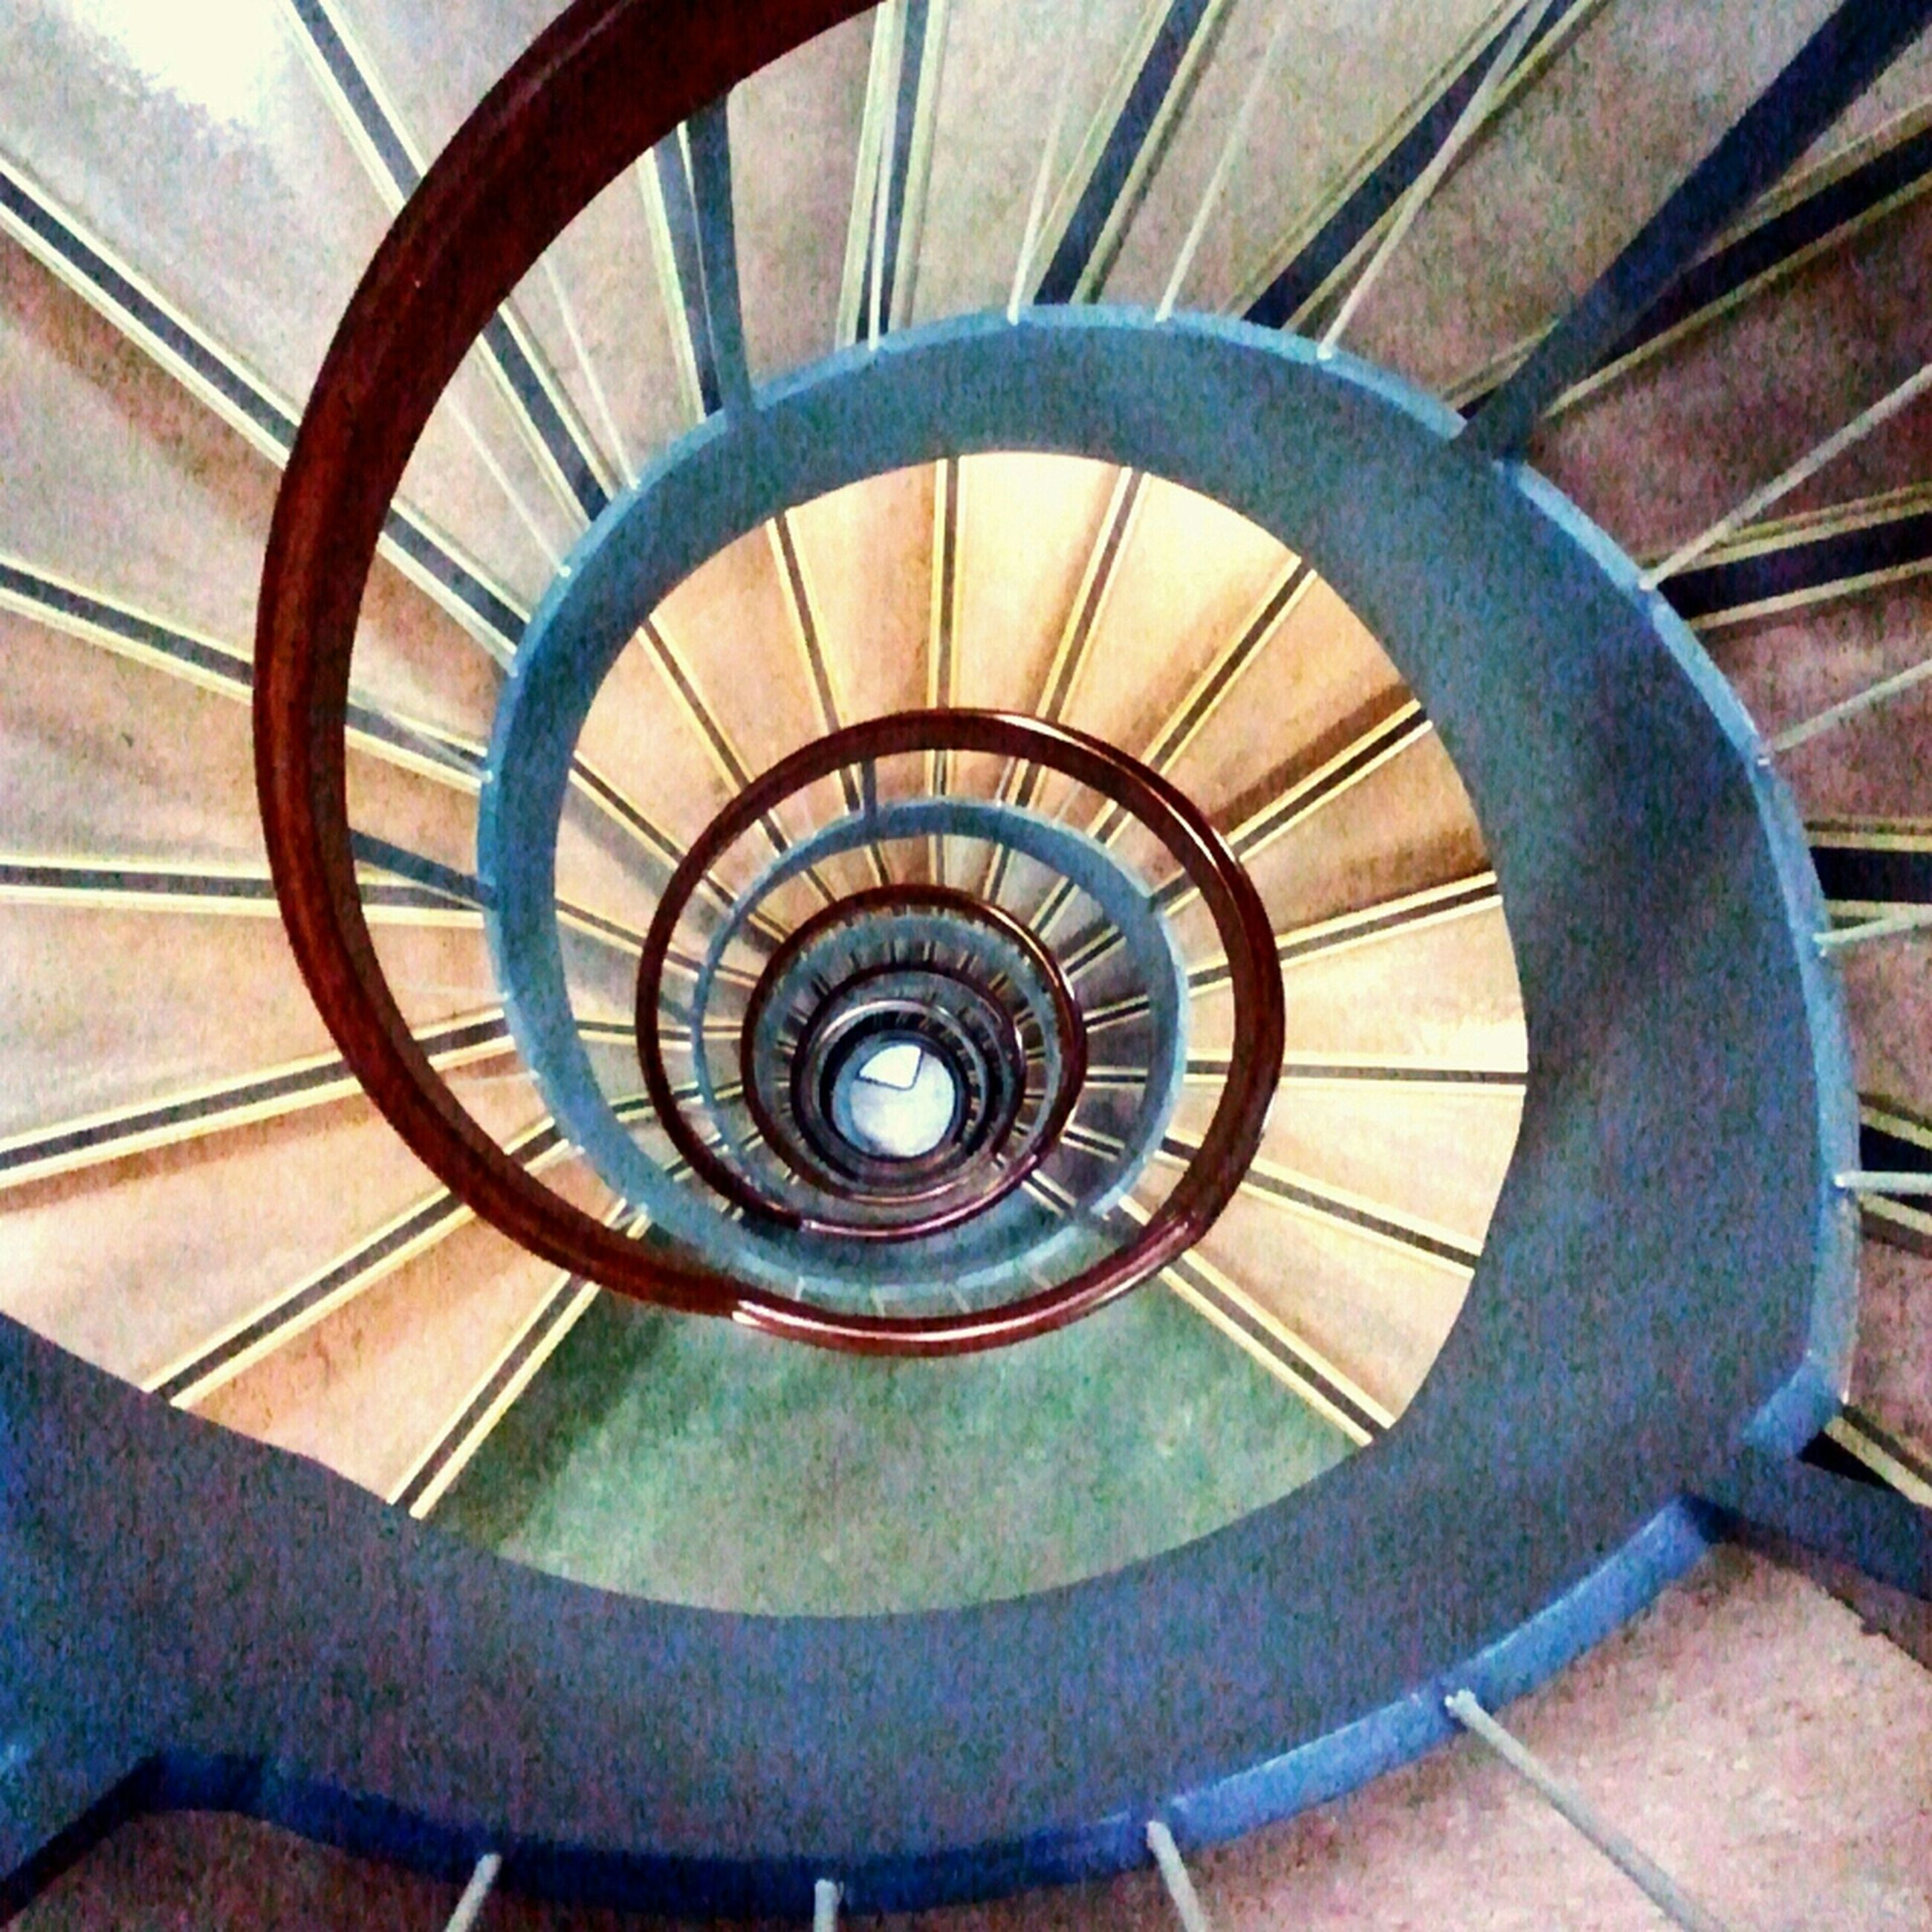 indoors, steps and staircases, spiral staircase, steps, staircase, spiral, railing, architecture, built structure, pattern, circle, ceiling, directly below, high angle view, stairs, geometric shape, design, modern, directly above, building